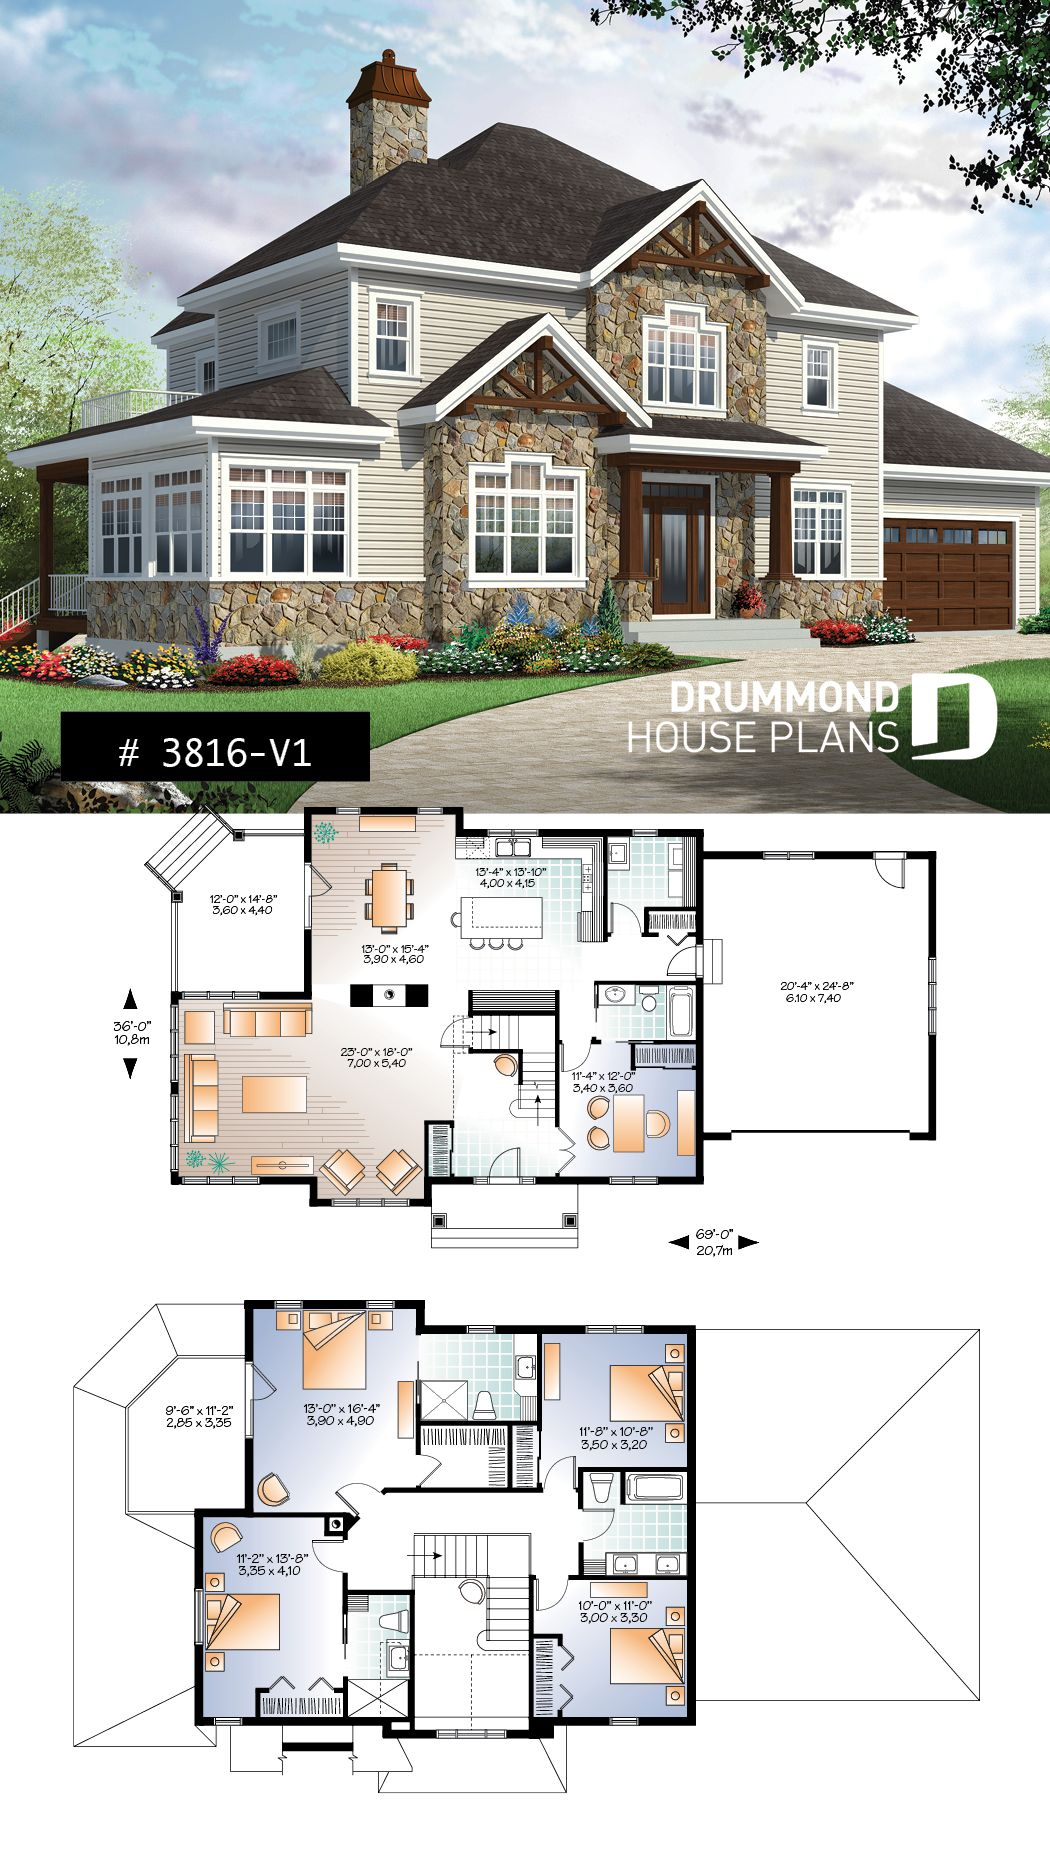 Two master suites Craftsman house plan, 4 bedrooms, 4 bathrooms, home office, solarium, fireplace #houseideas